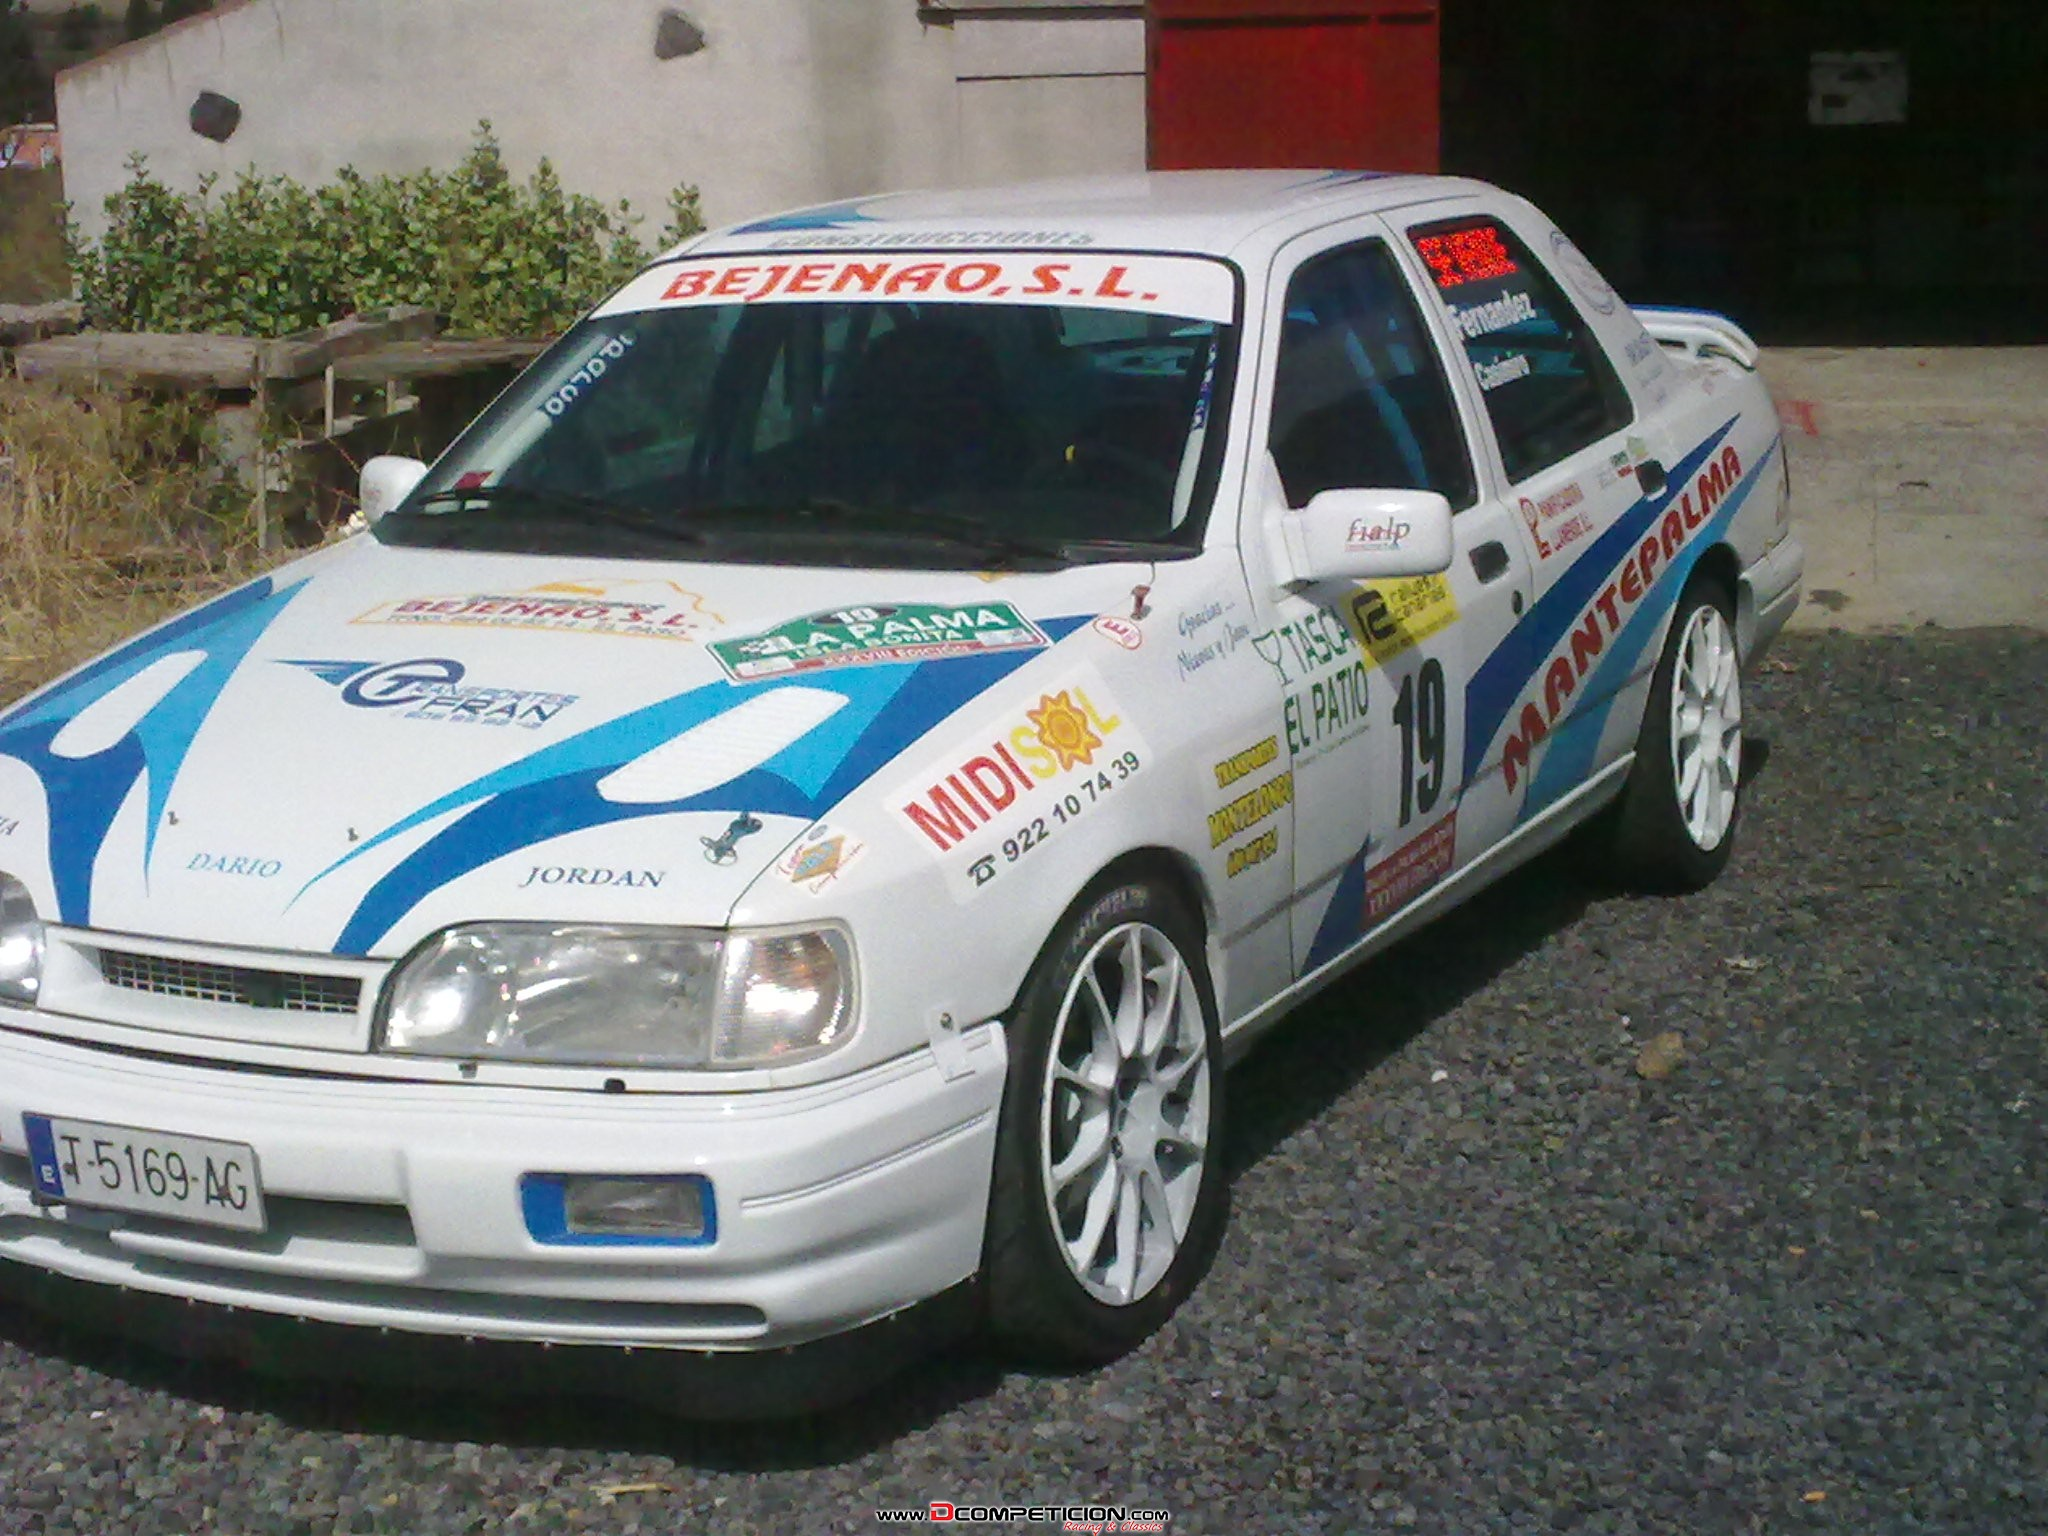 Foto1 se vende Ford Sierra cosworth 4x4